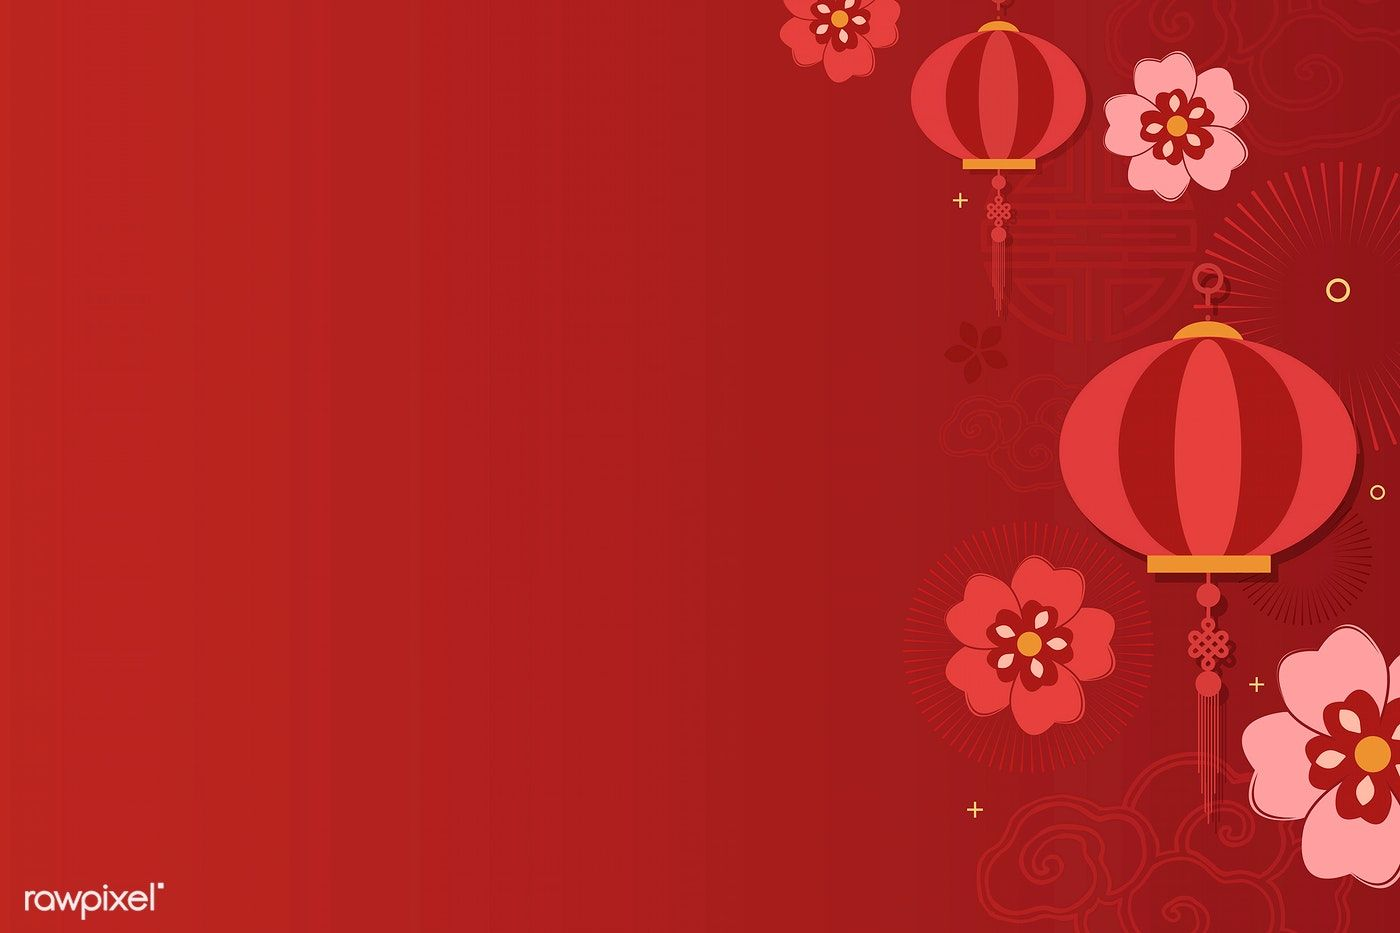 Chinese new year 2019 greeting background free image by